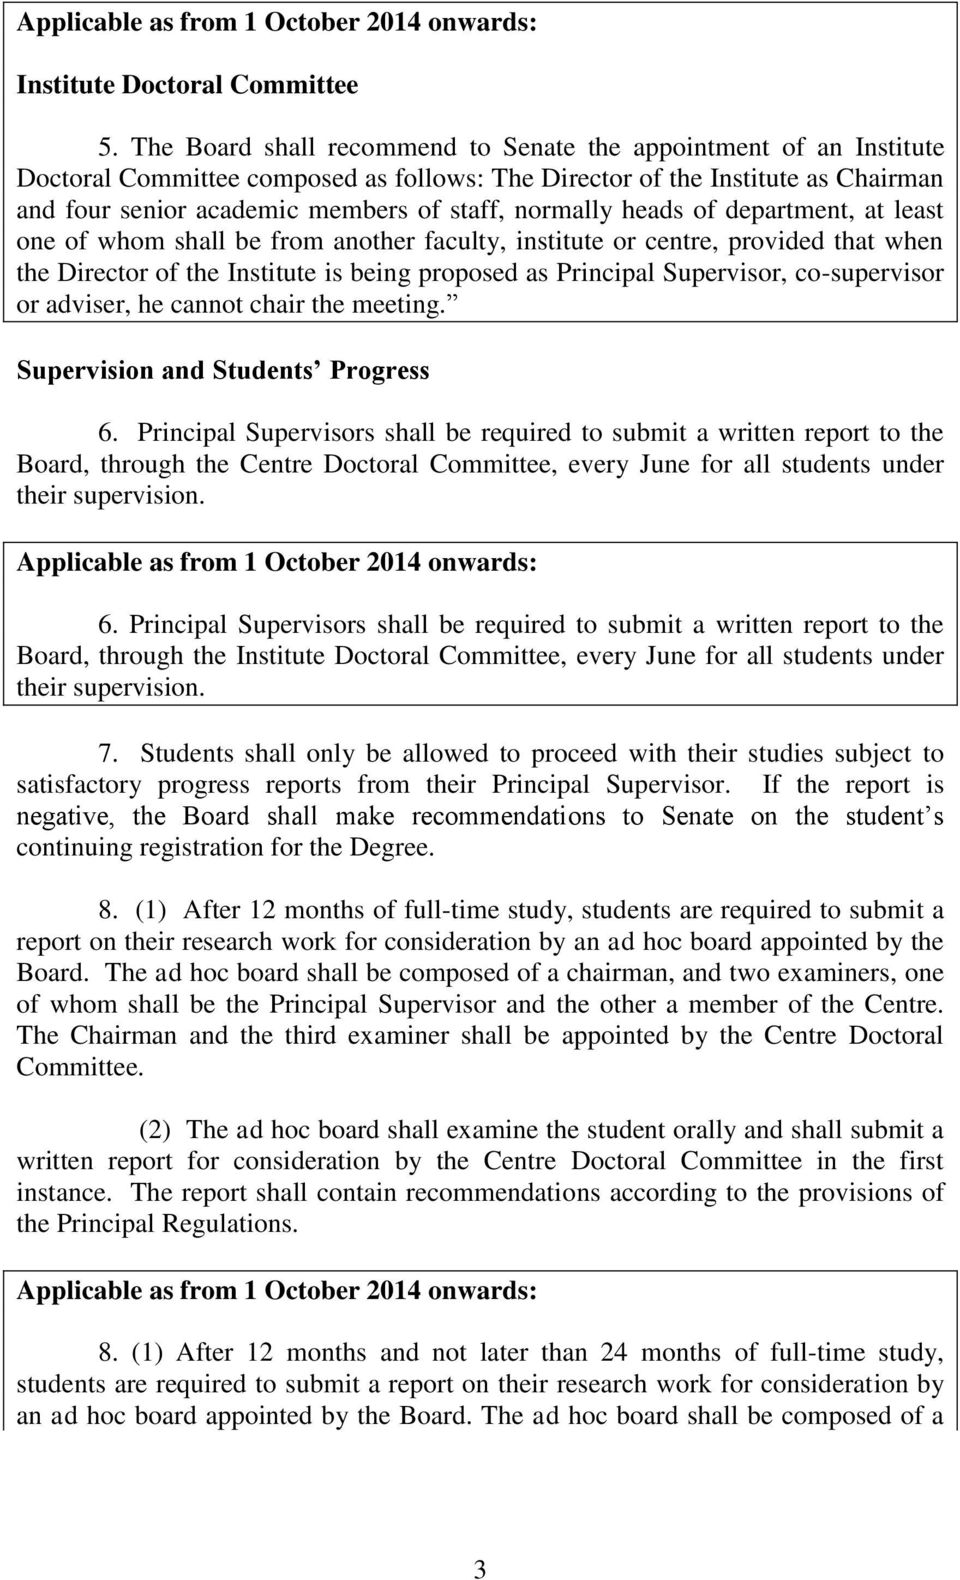 normally heads of department, at least one of whom shall be from another faculty, institute or centre, provided that when the Director of the Institute is being proposed as Principal Supervisor,